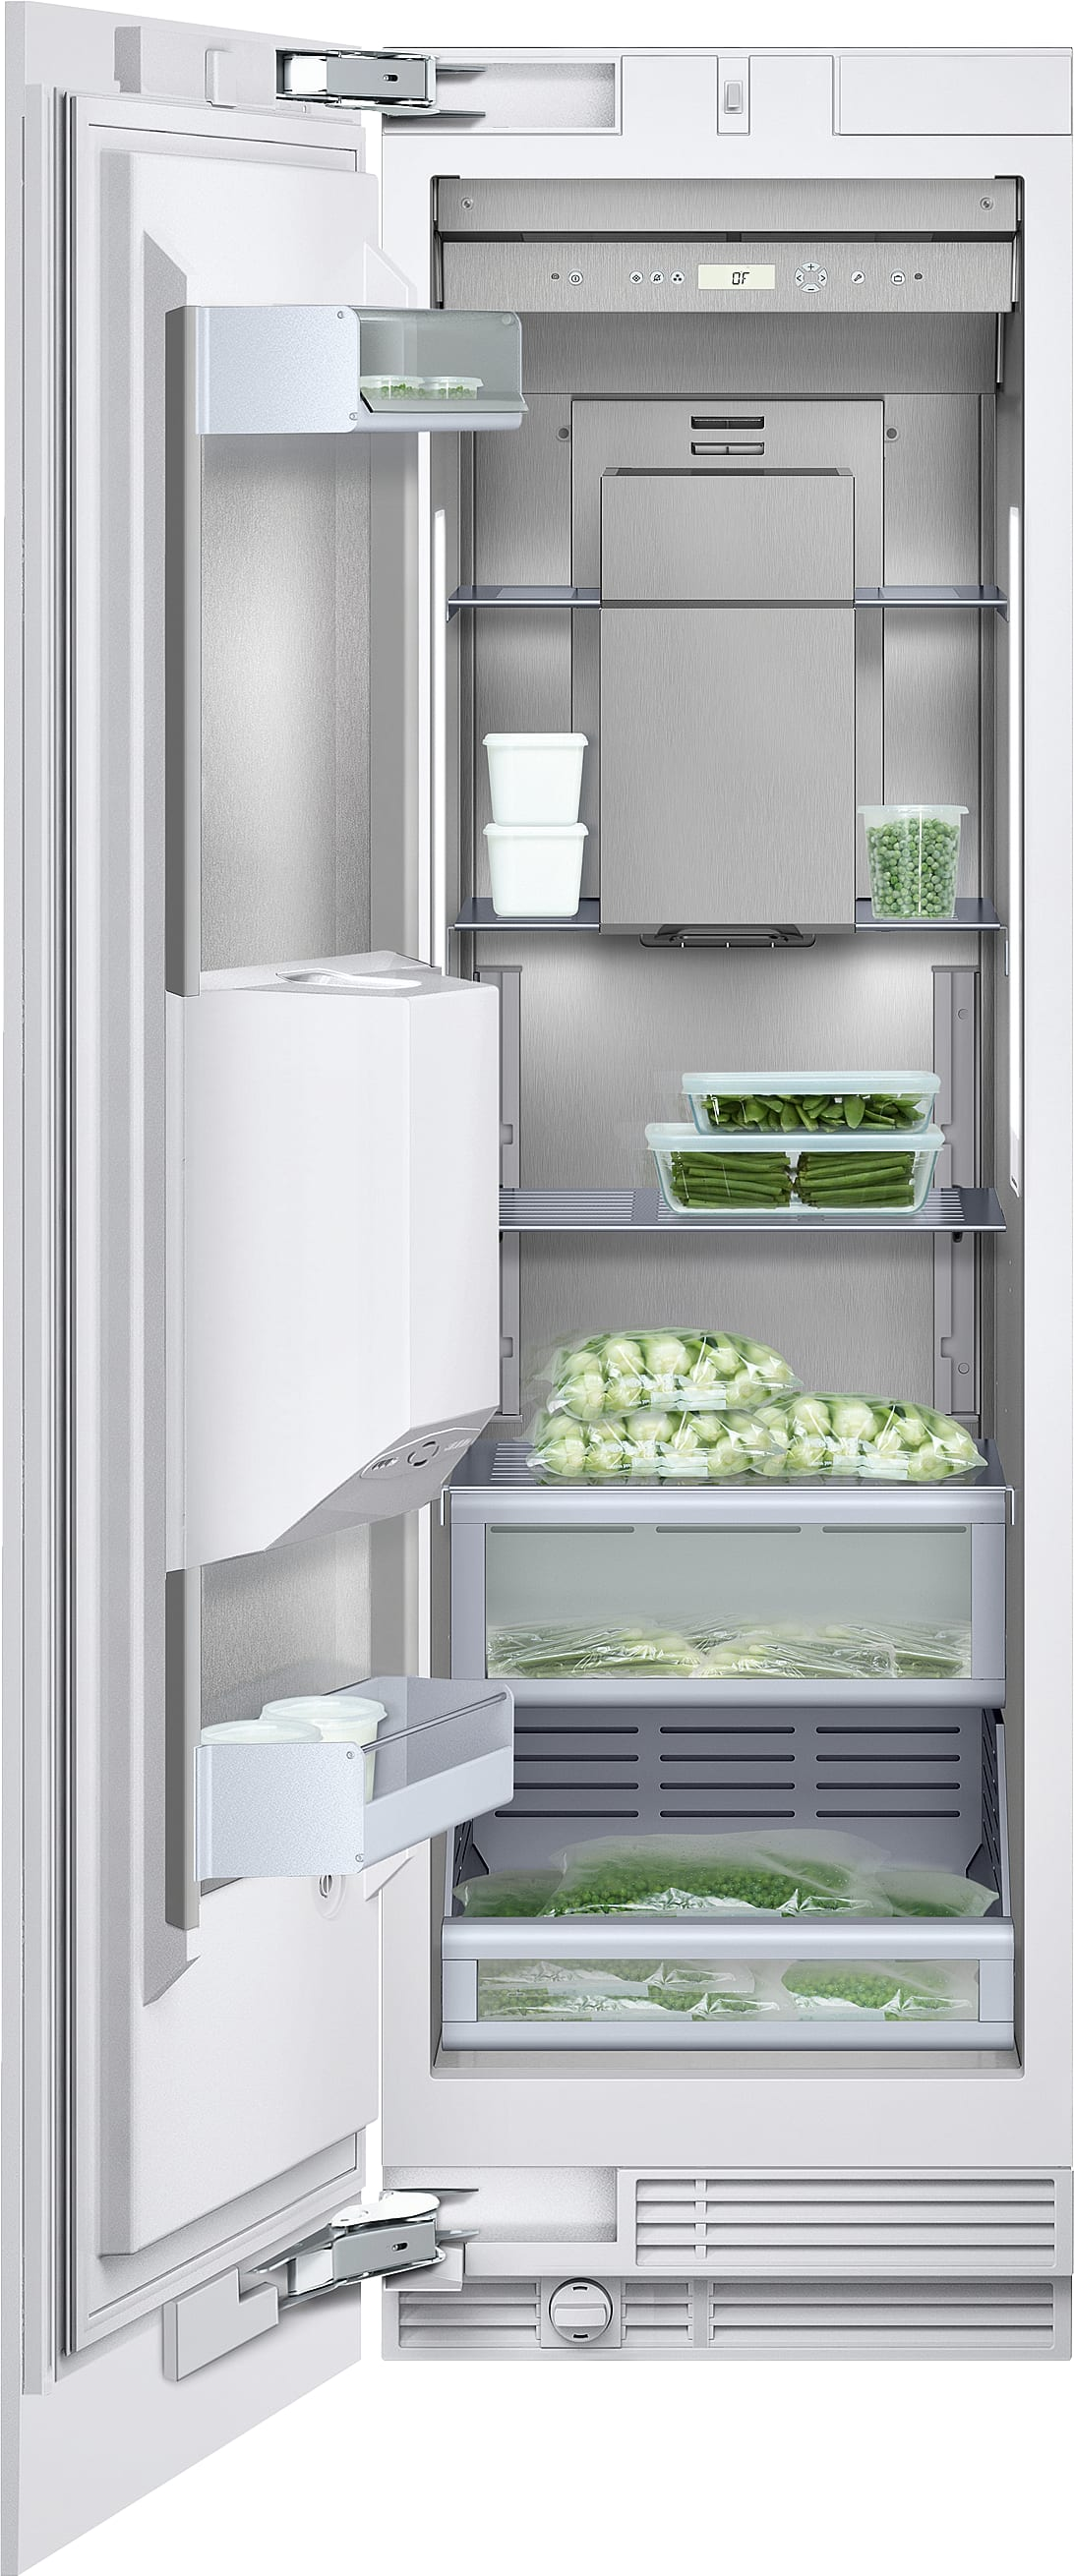 Gaggenau Rf463703 24 Inch Built In Freezer Column With Ice